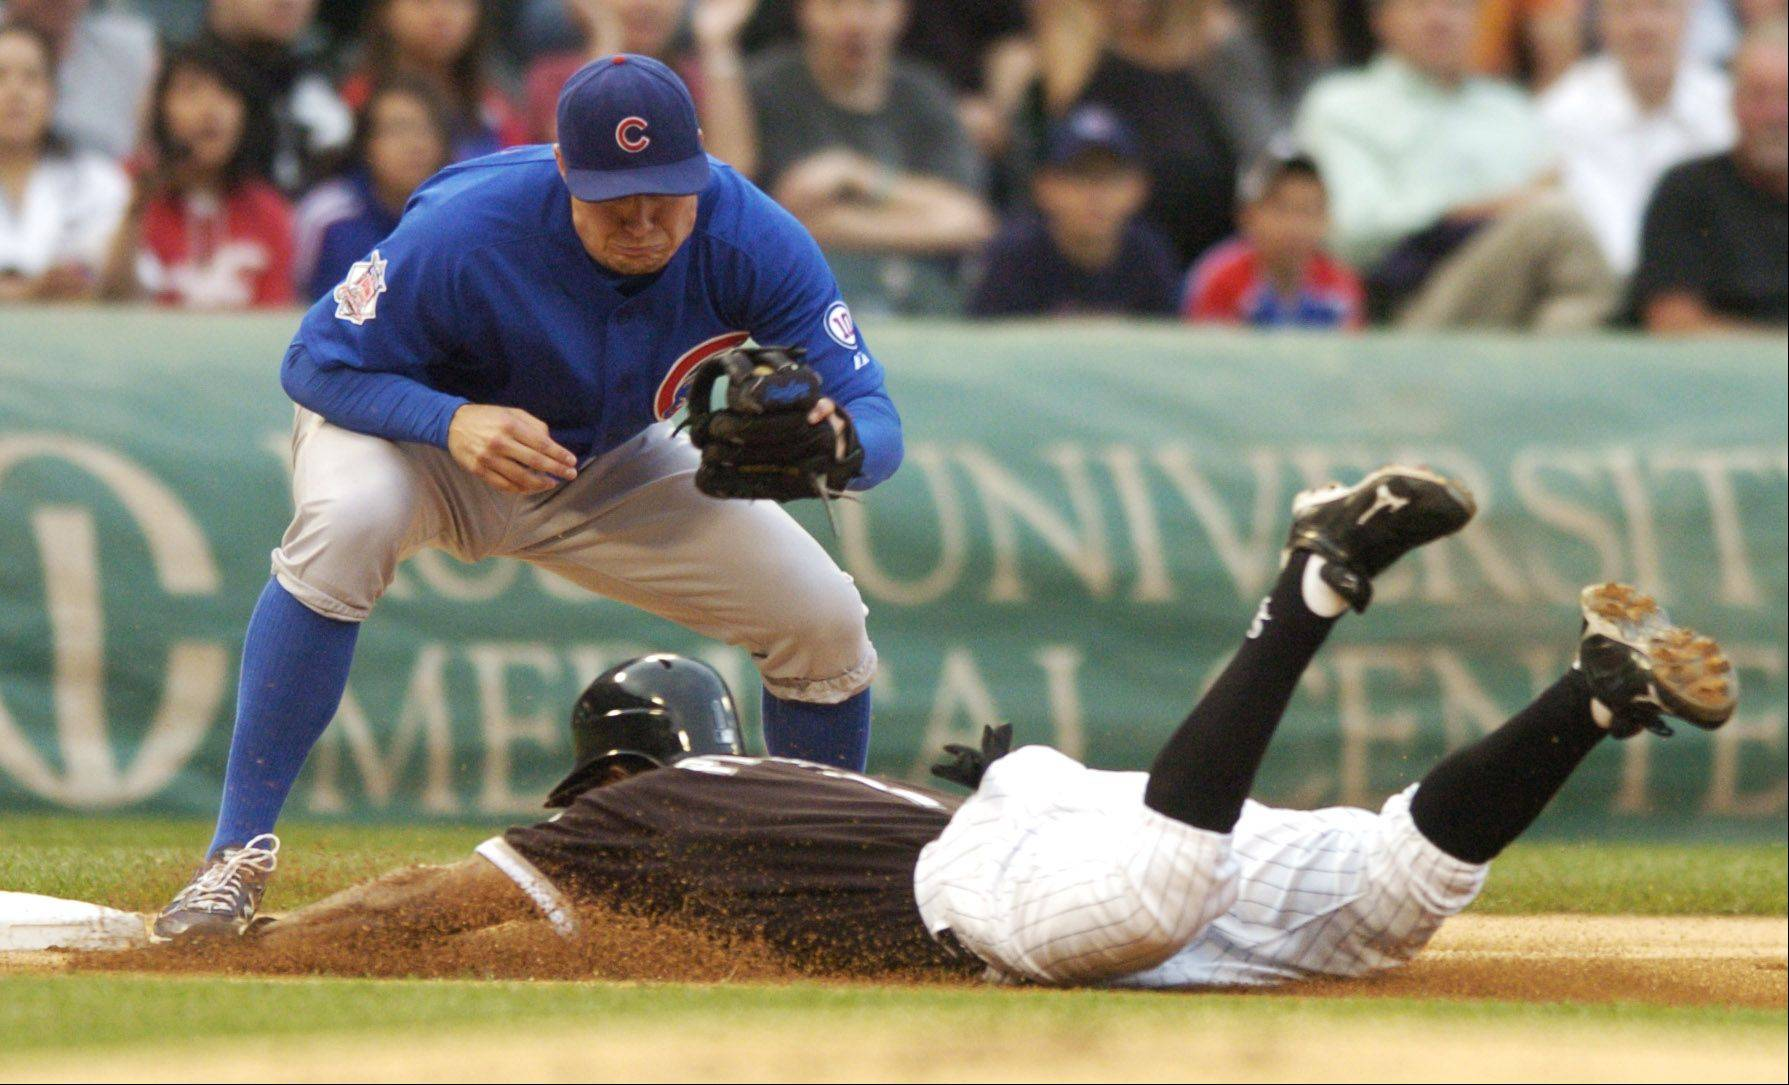 Juan Pierre of the White Sox advances to third on a flyball ahead of the tag by Cubs third baseman Jeff Baker during Wednesday's game at U.S. Cellular Field.